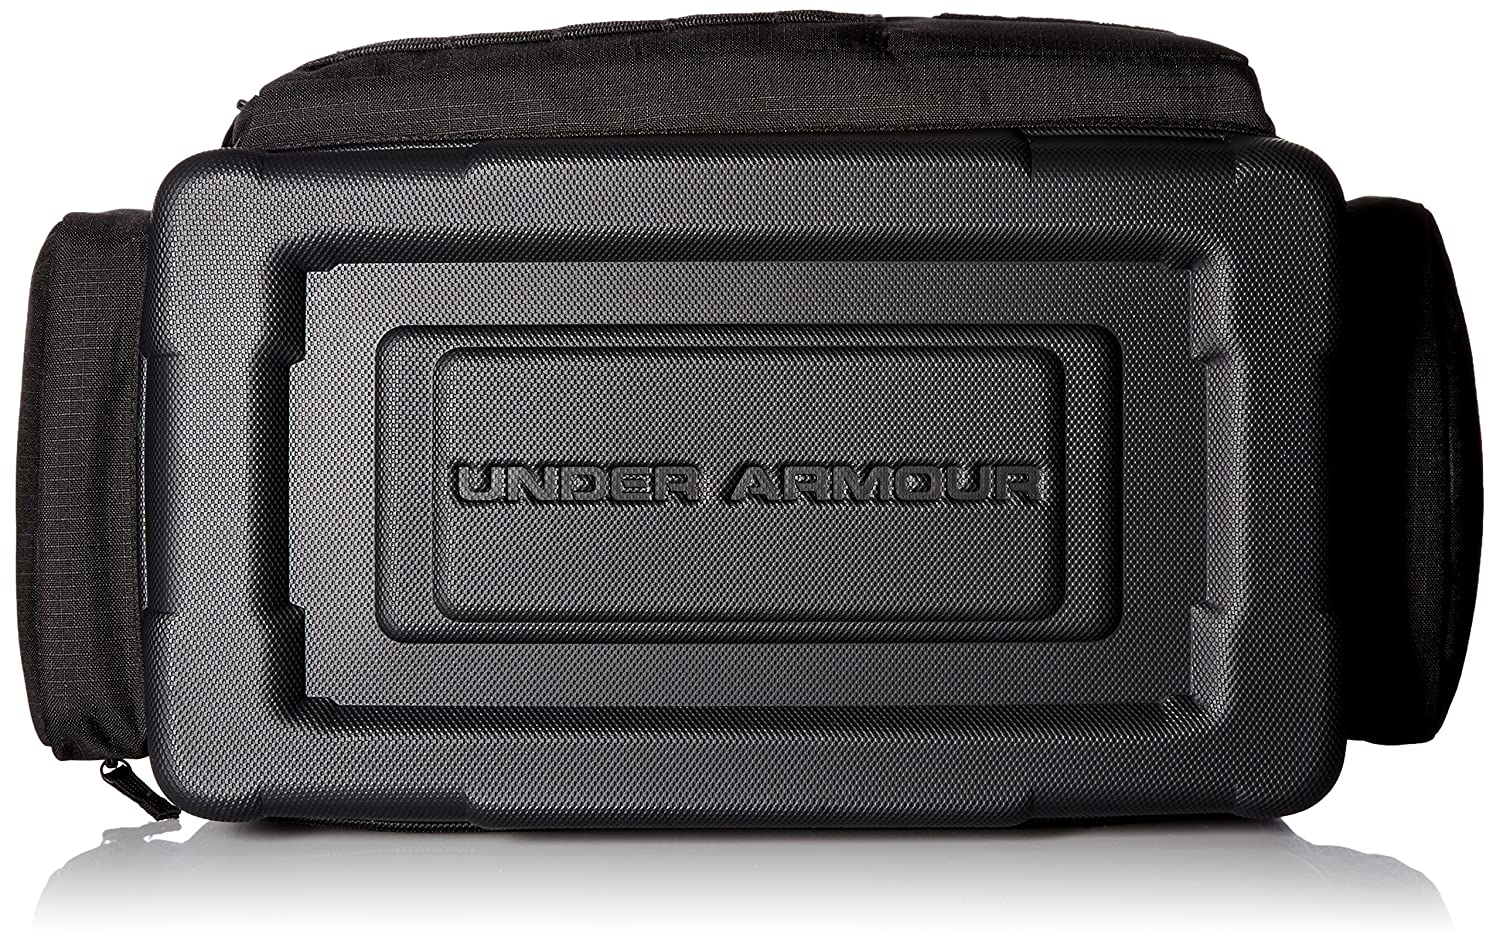 766200ed79c Amazon.com : Under Armour Men's Tactical Range Bag 2.0, Black/Black, One  Size : Clothing